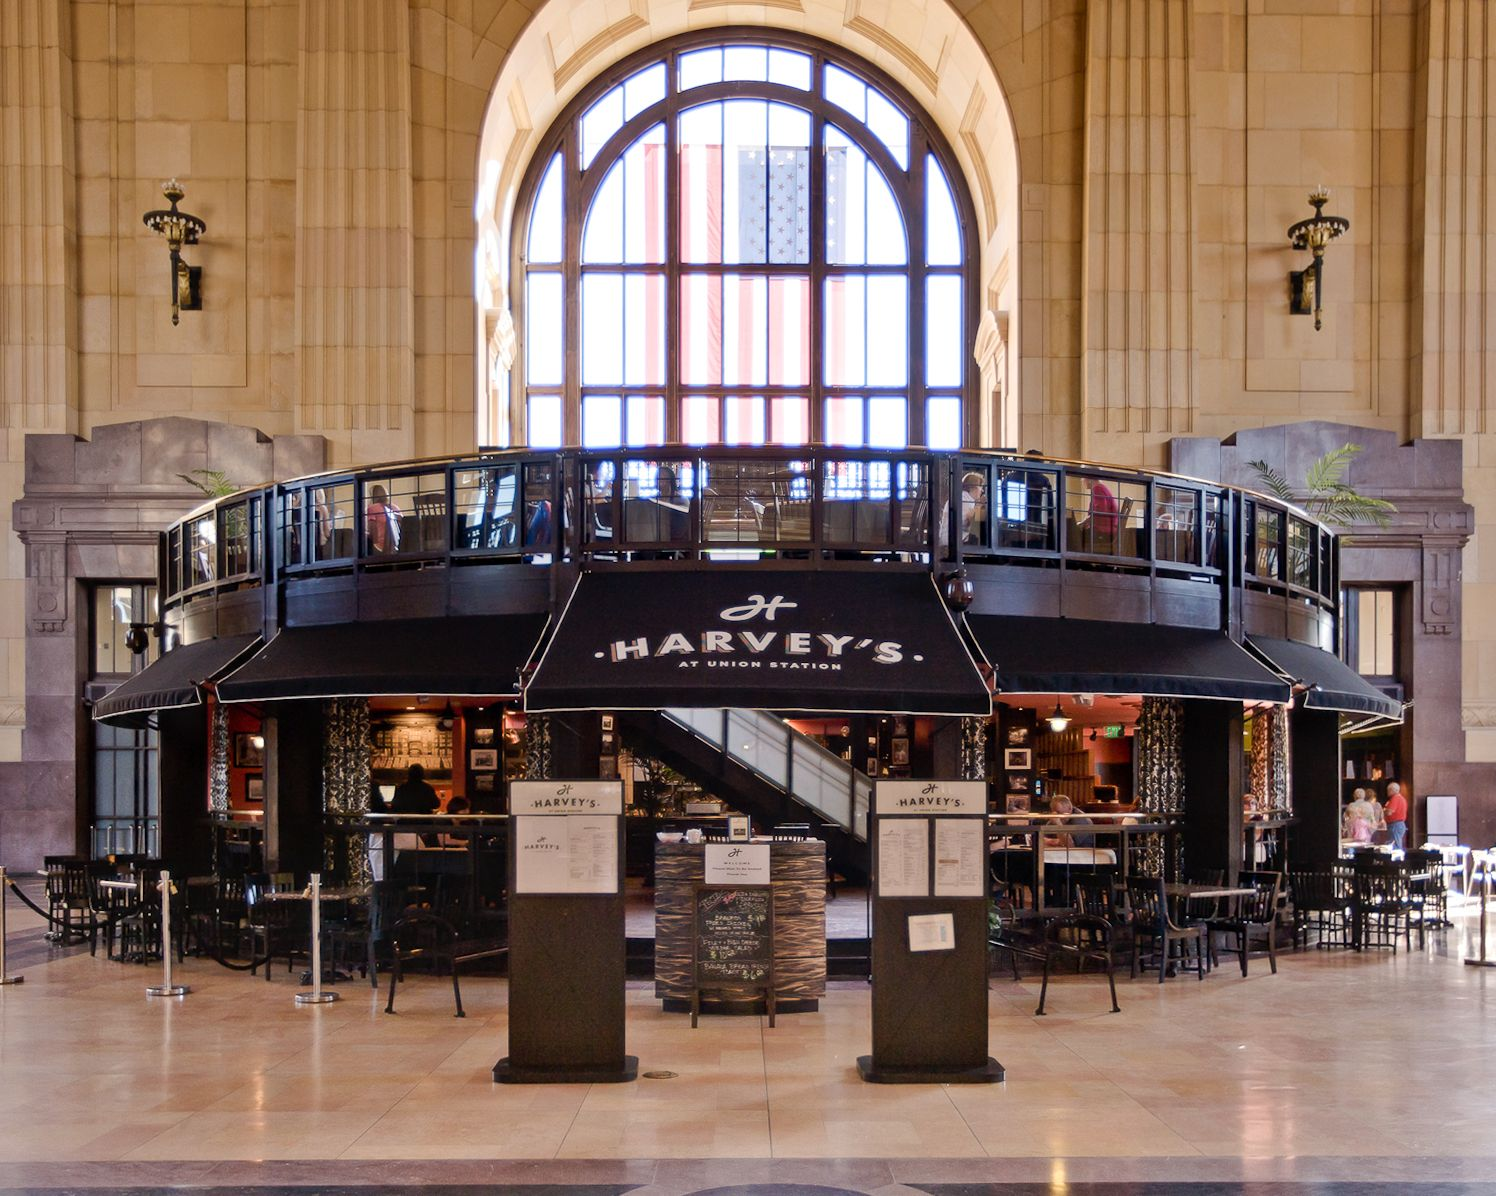 Harvey S Union Station Iove This Place